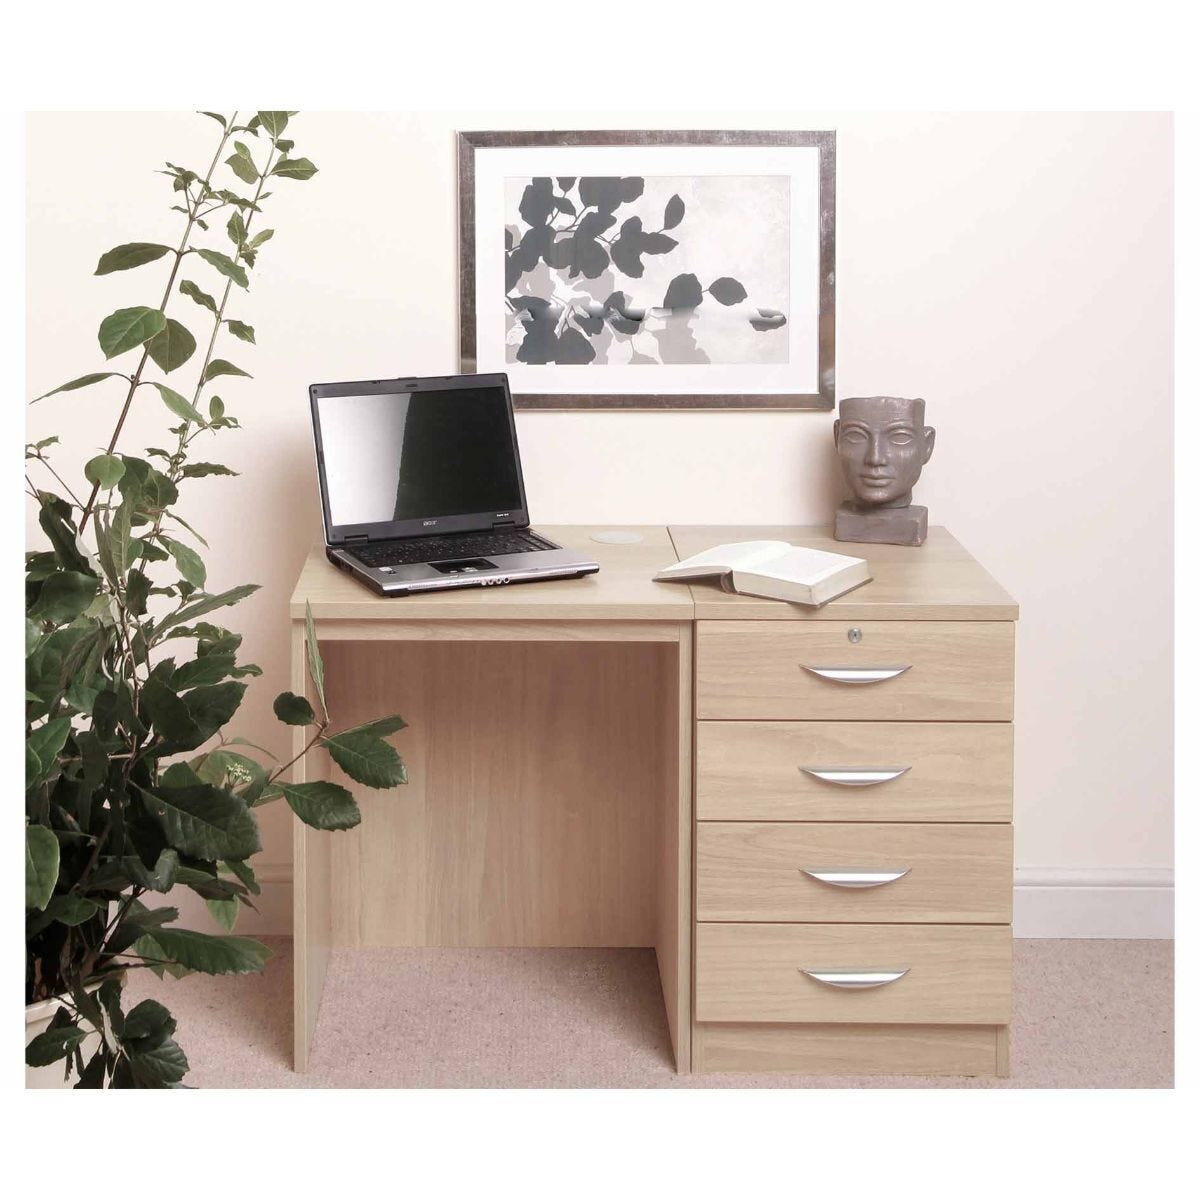 R White Home Office Desk Set with Four Drawers Beech